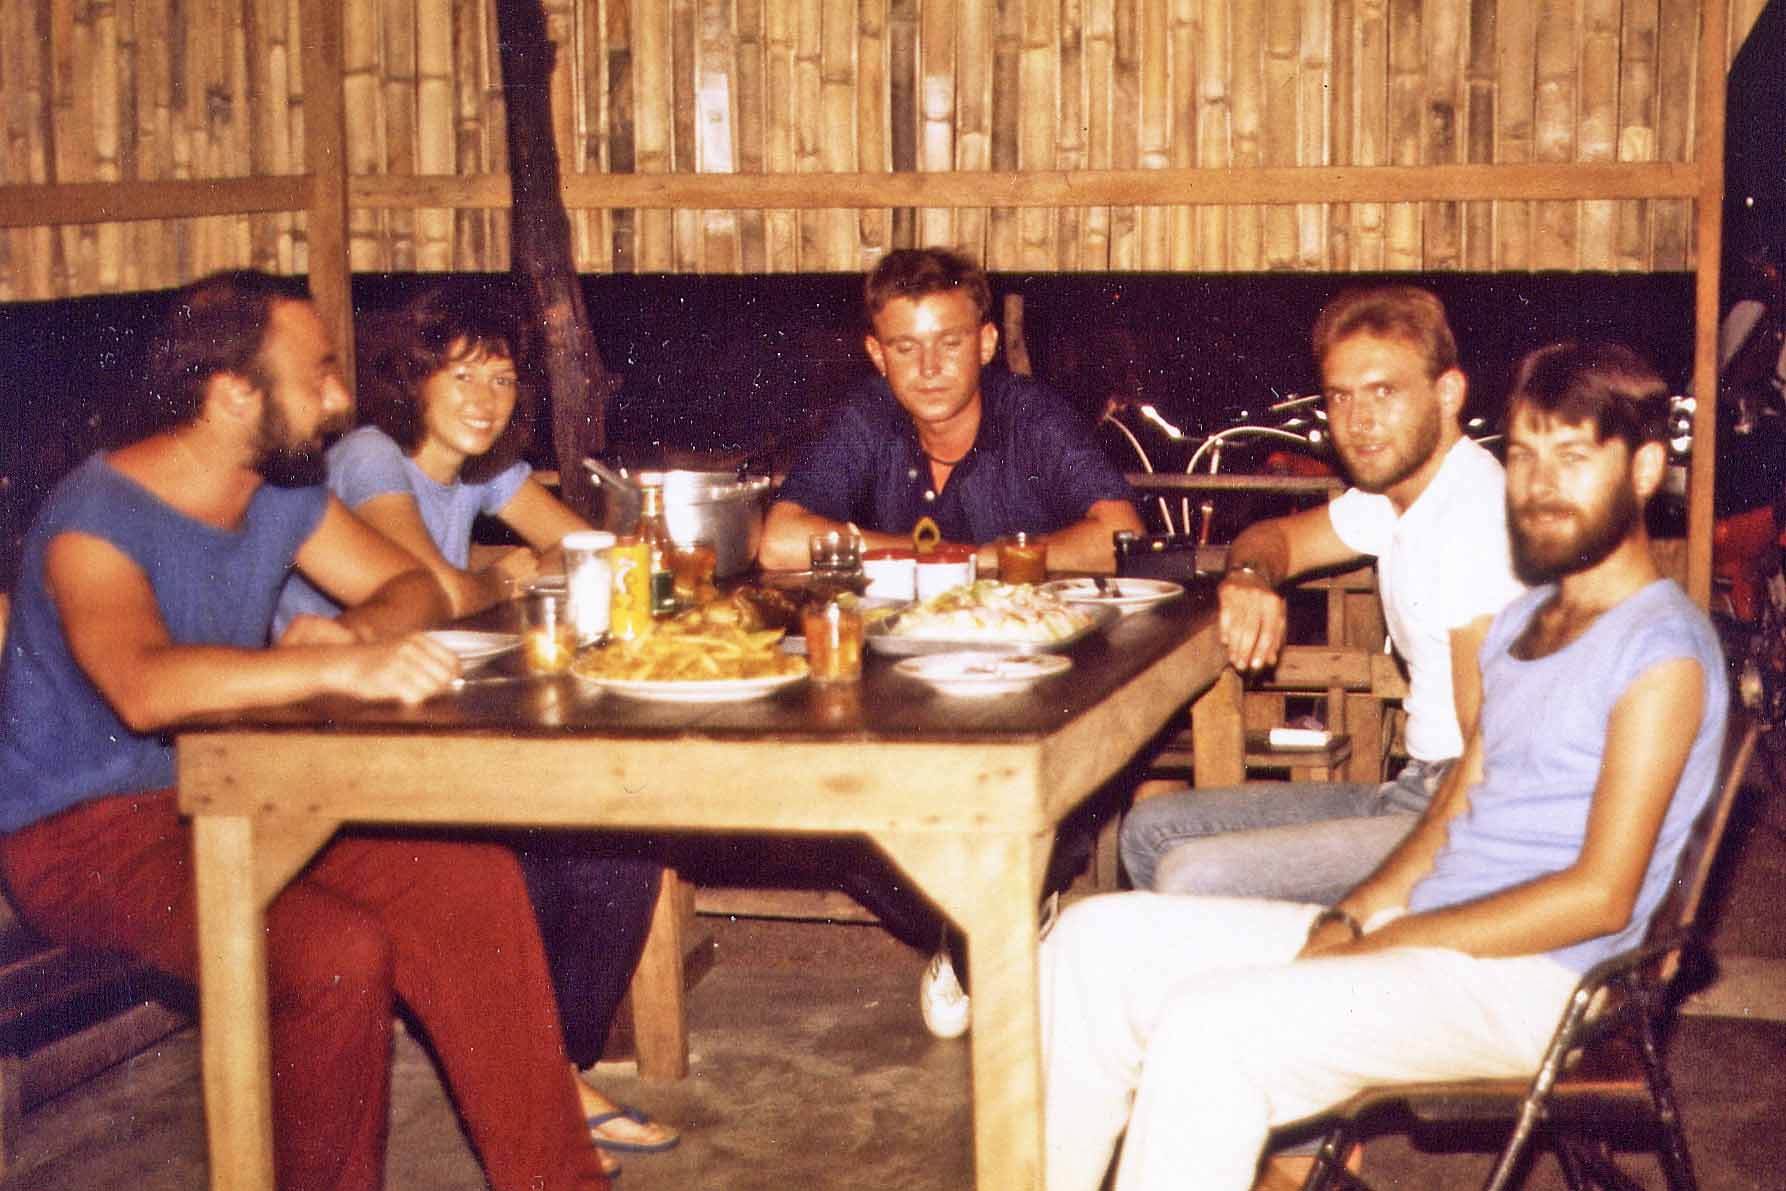 Dinnerparty on Koh Samui